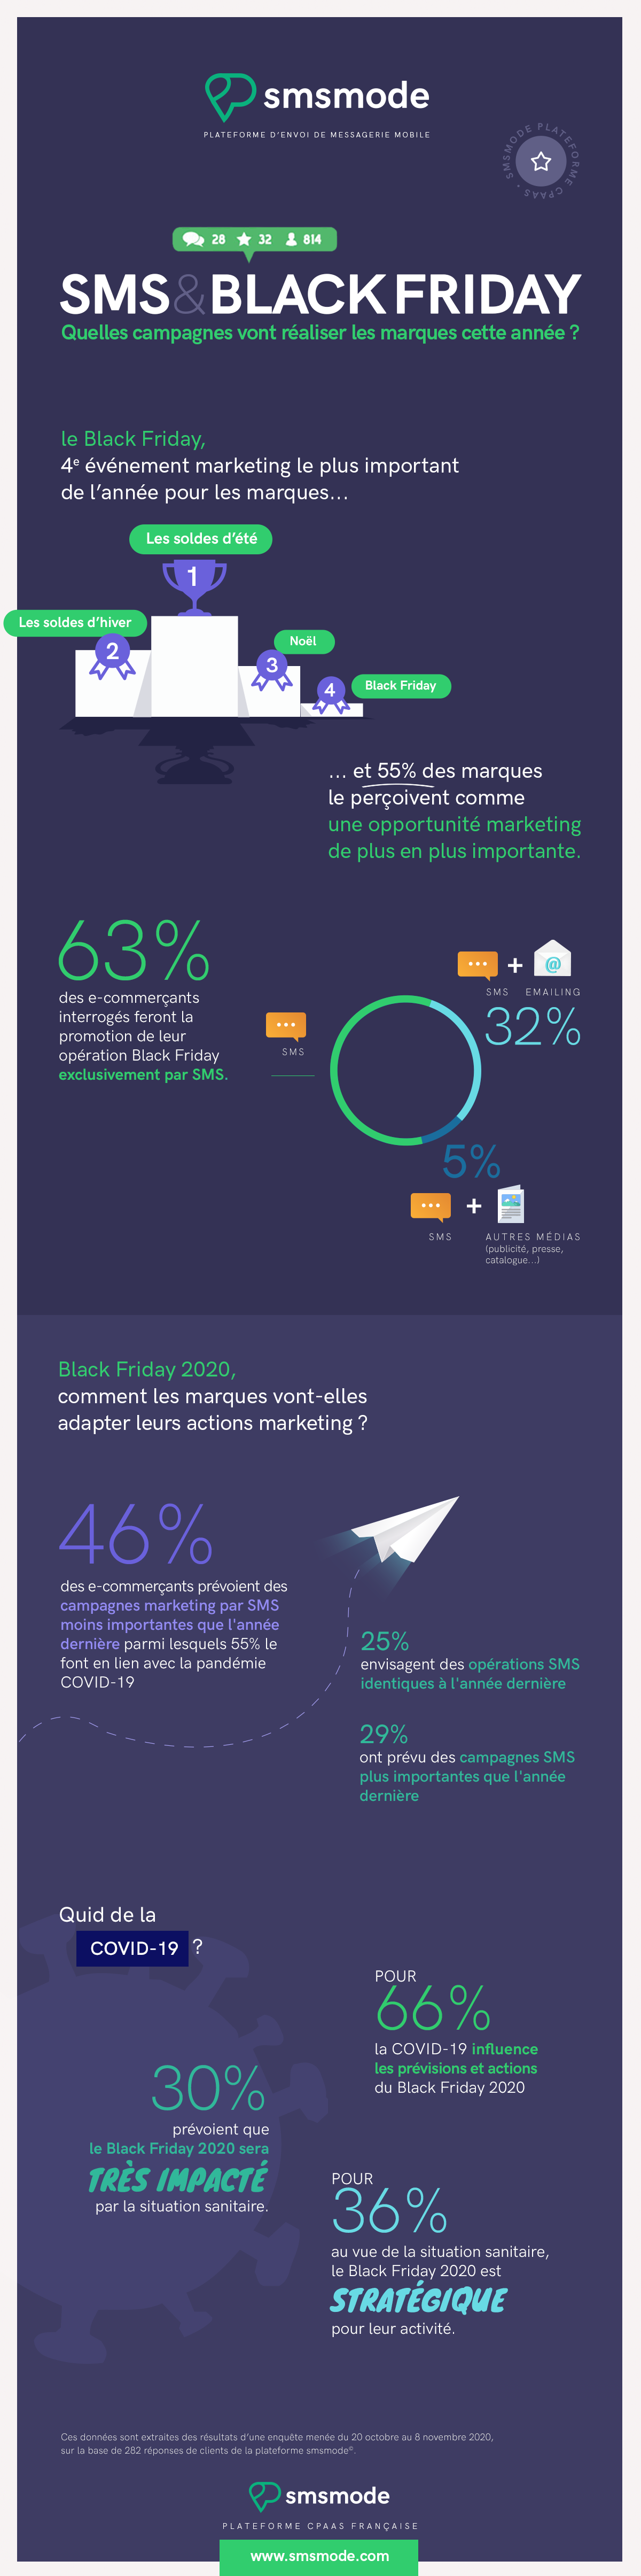 infographie smsmode - le SMS et le Black Friday 2020